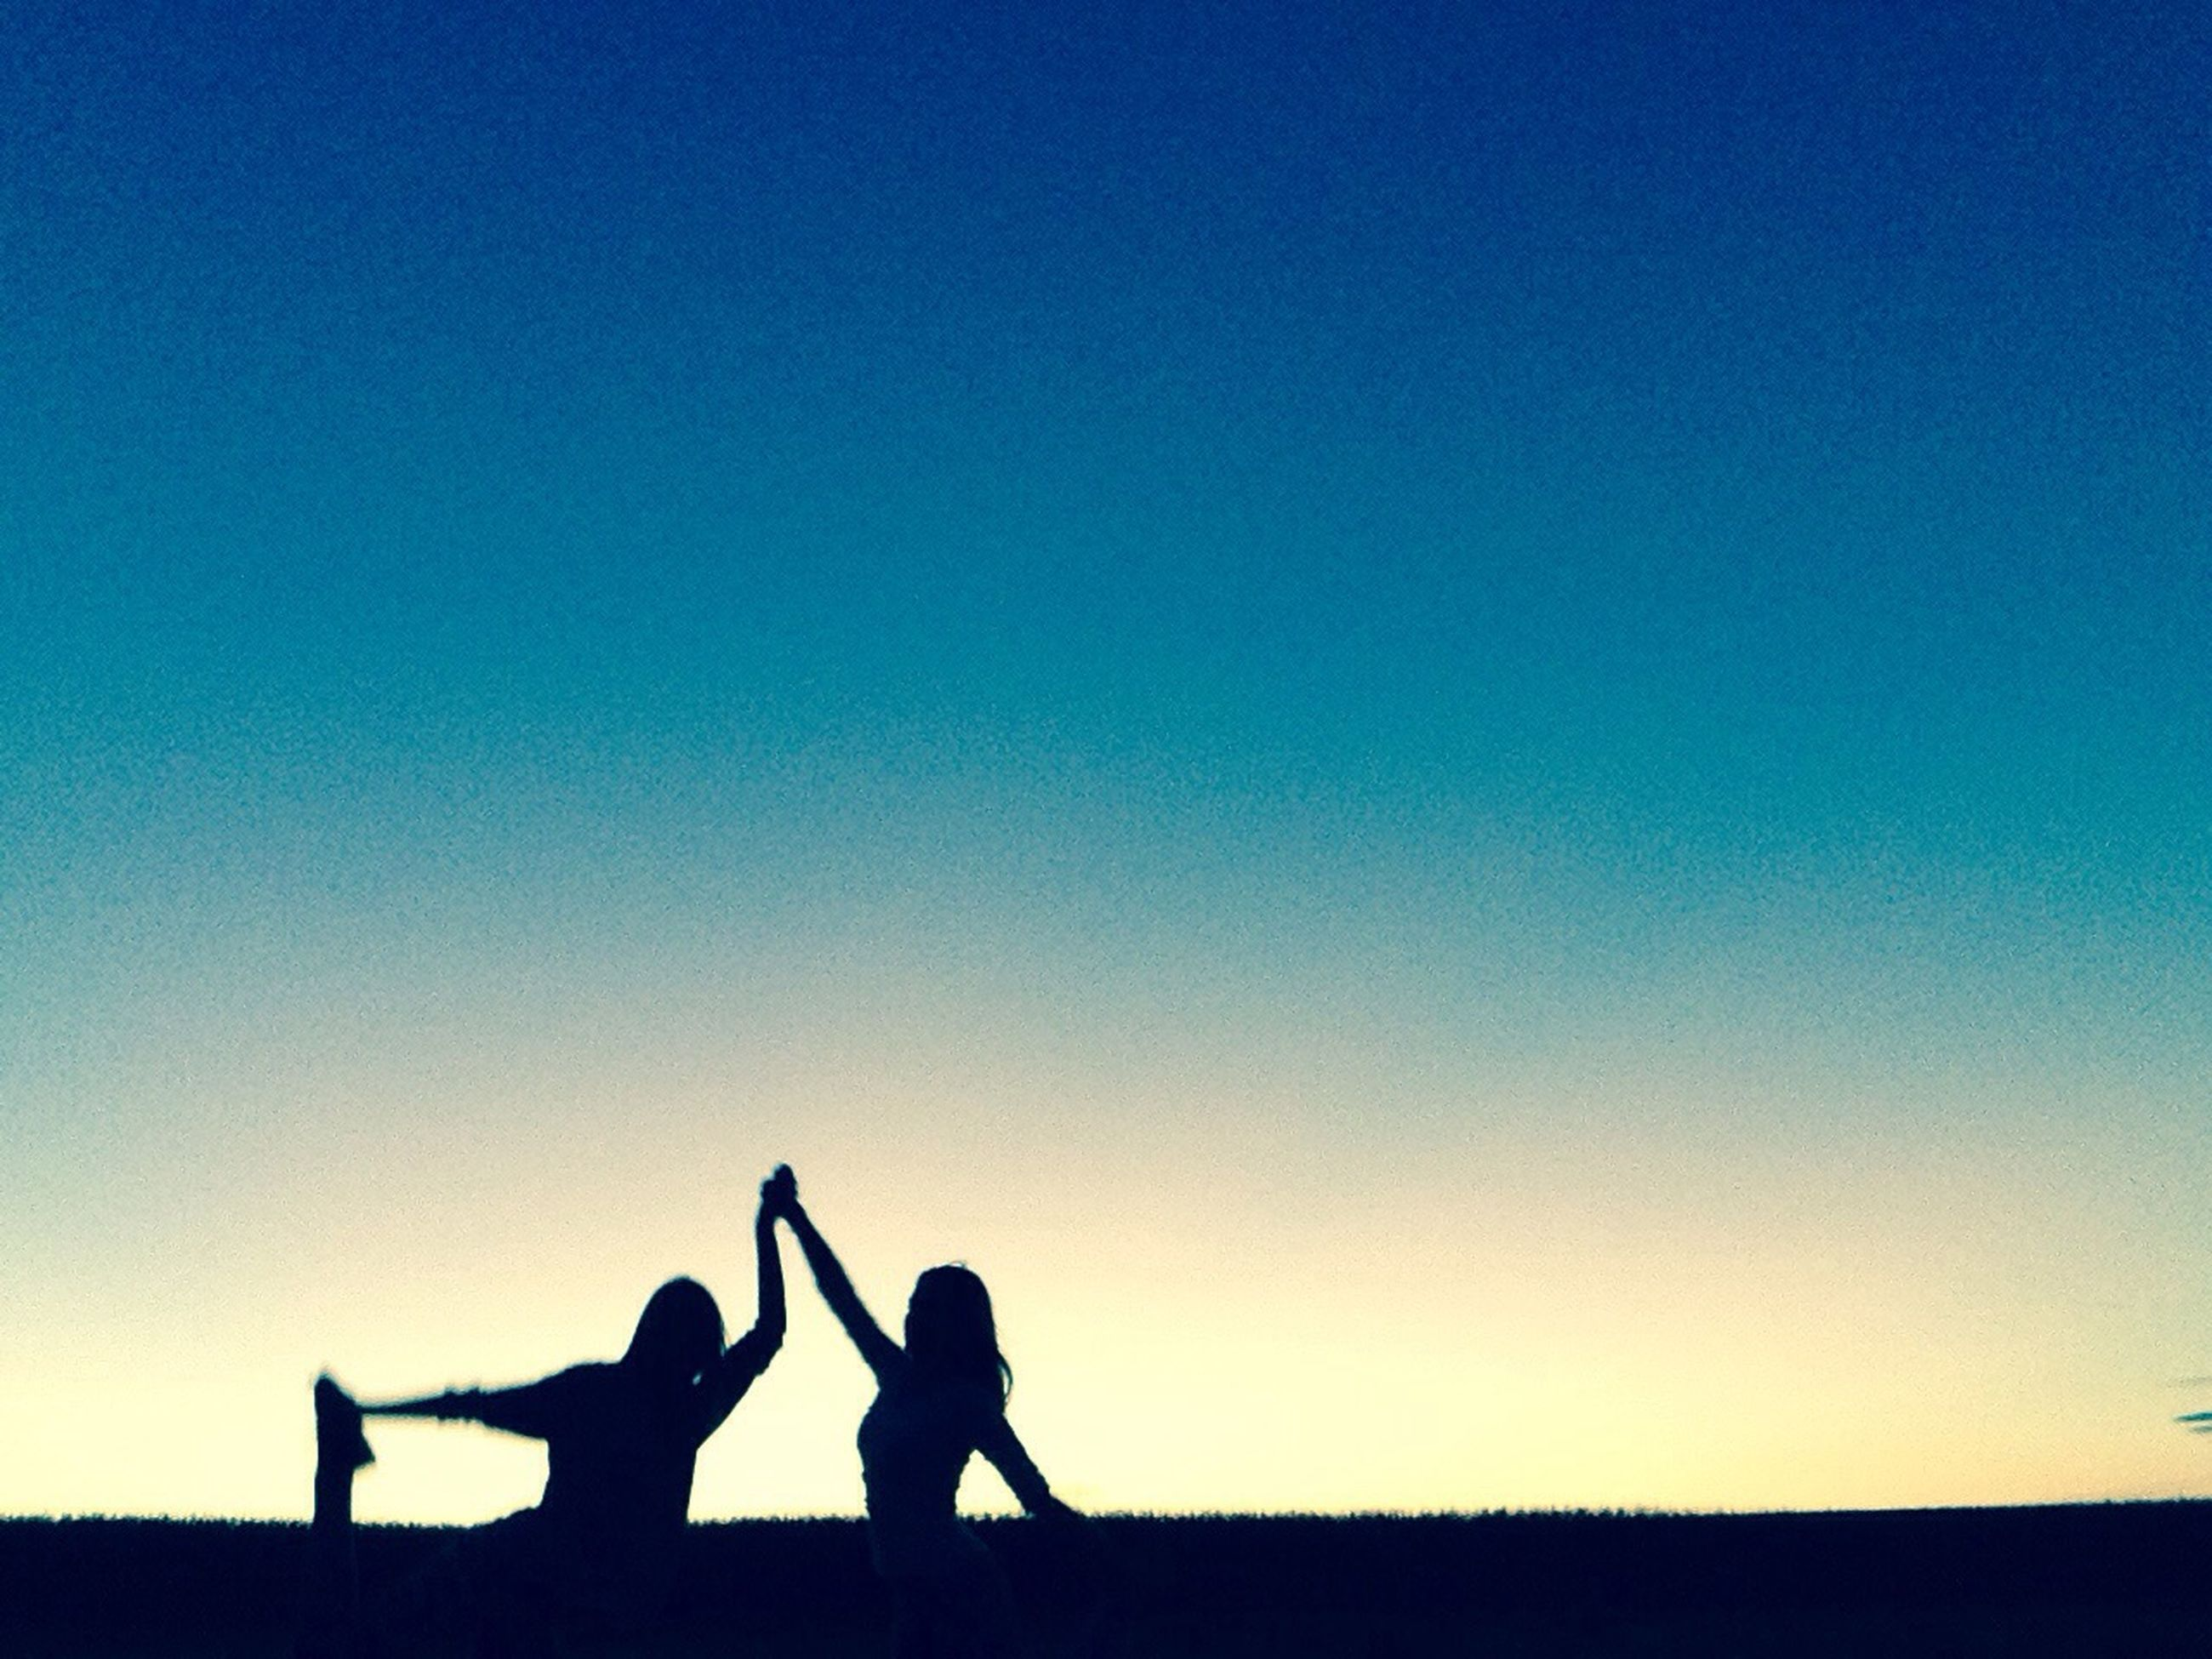 togetherness, lifestyles, silhouette, leisure activity, copy space, men, bonding, clear sky, love, friendship, sunset, person, blue, standing, childhood, sitting